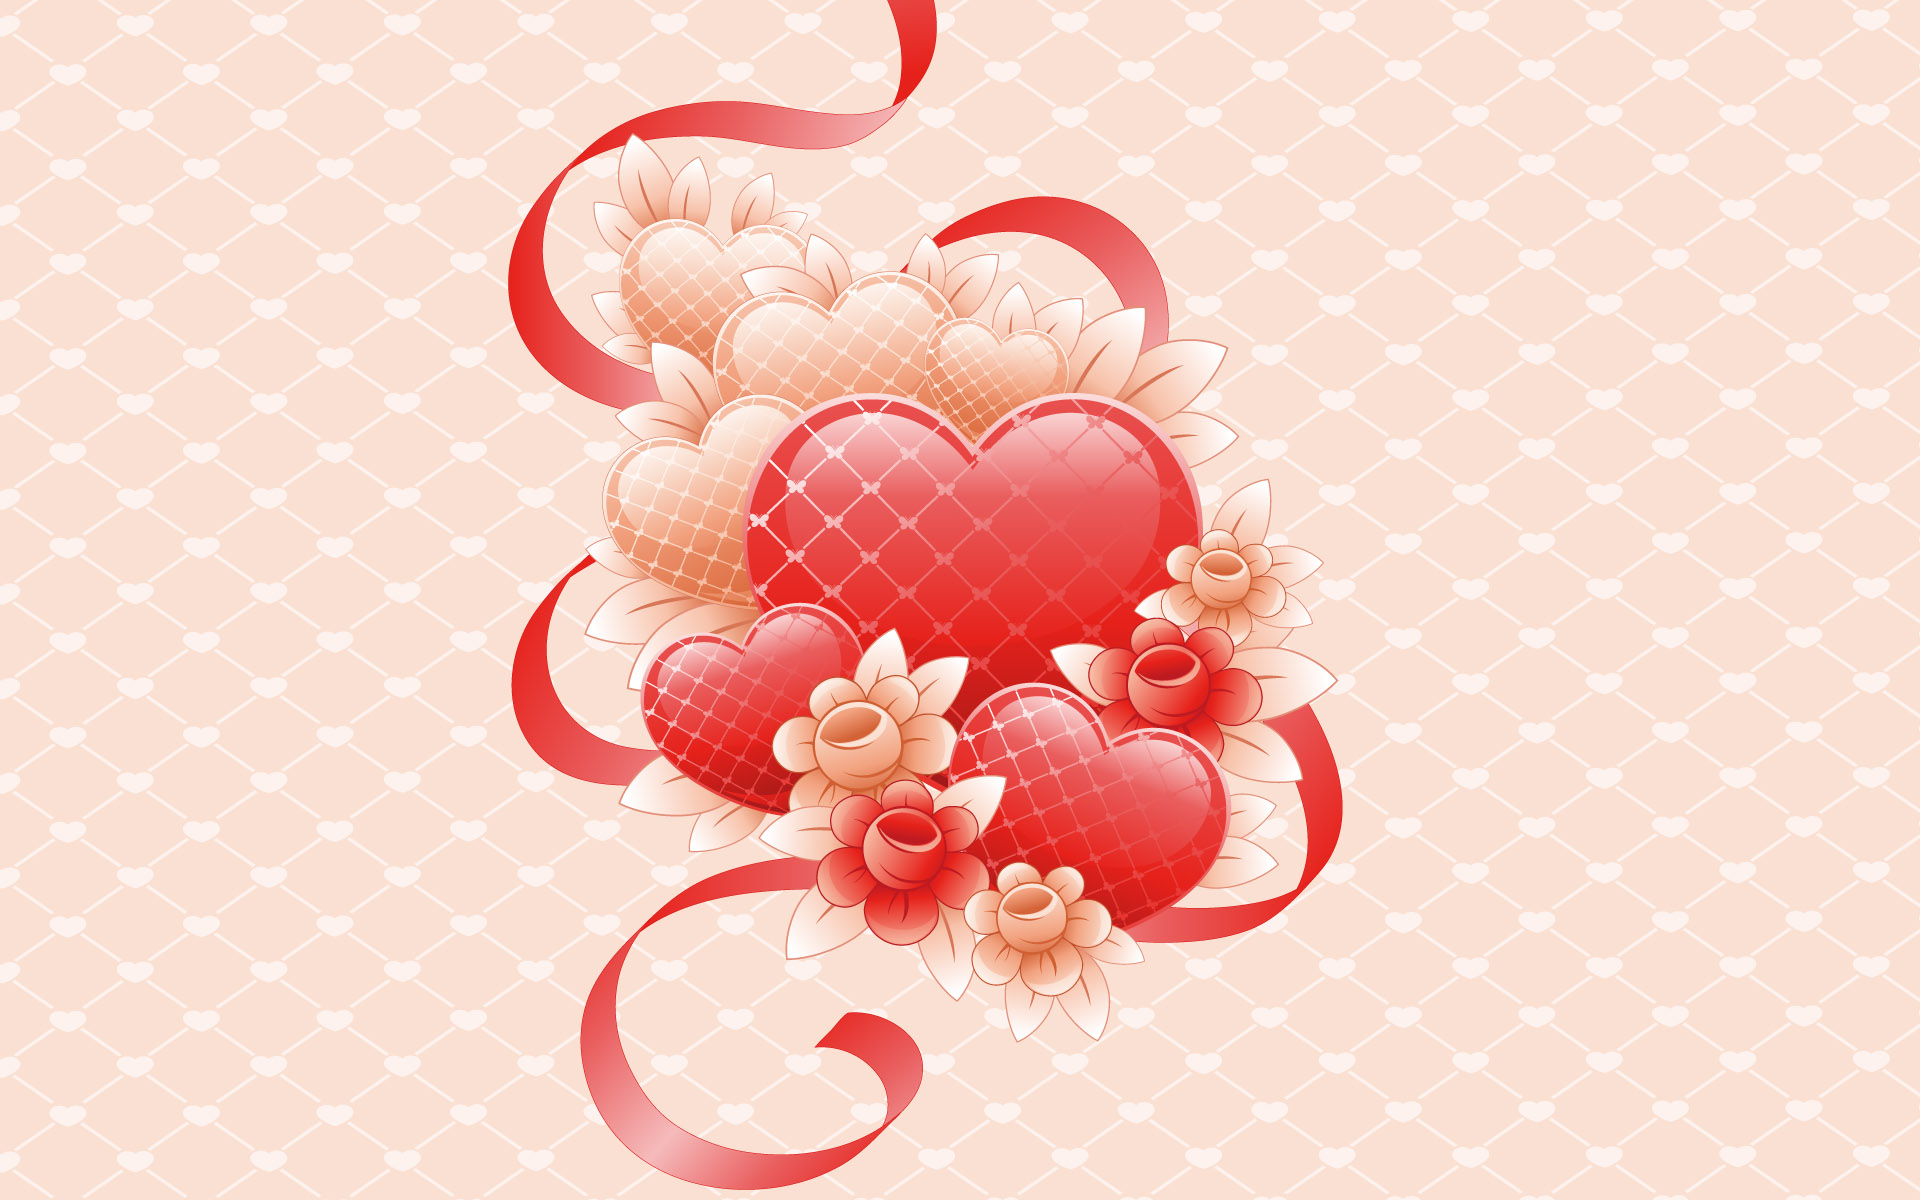 60 wallpapers for valentine 39 s day 1920x1200 hd wallpapers - Background for valentine pictures ...